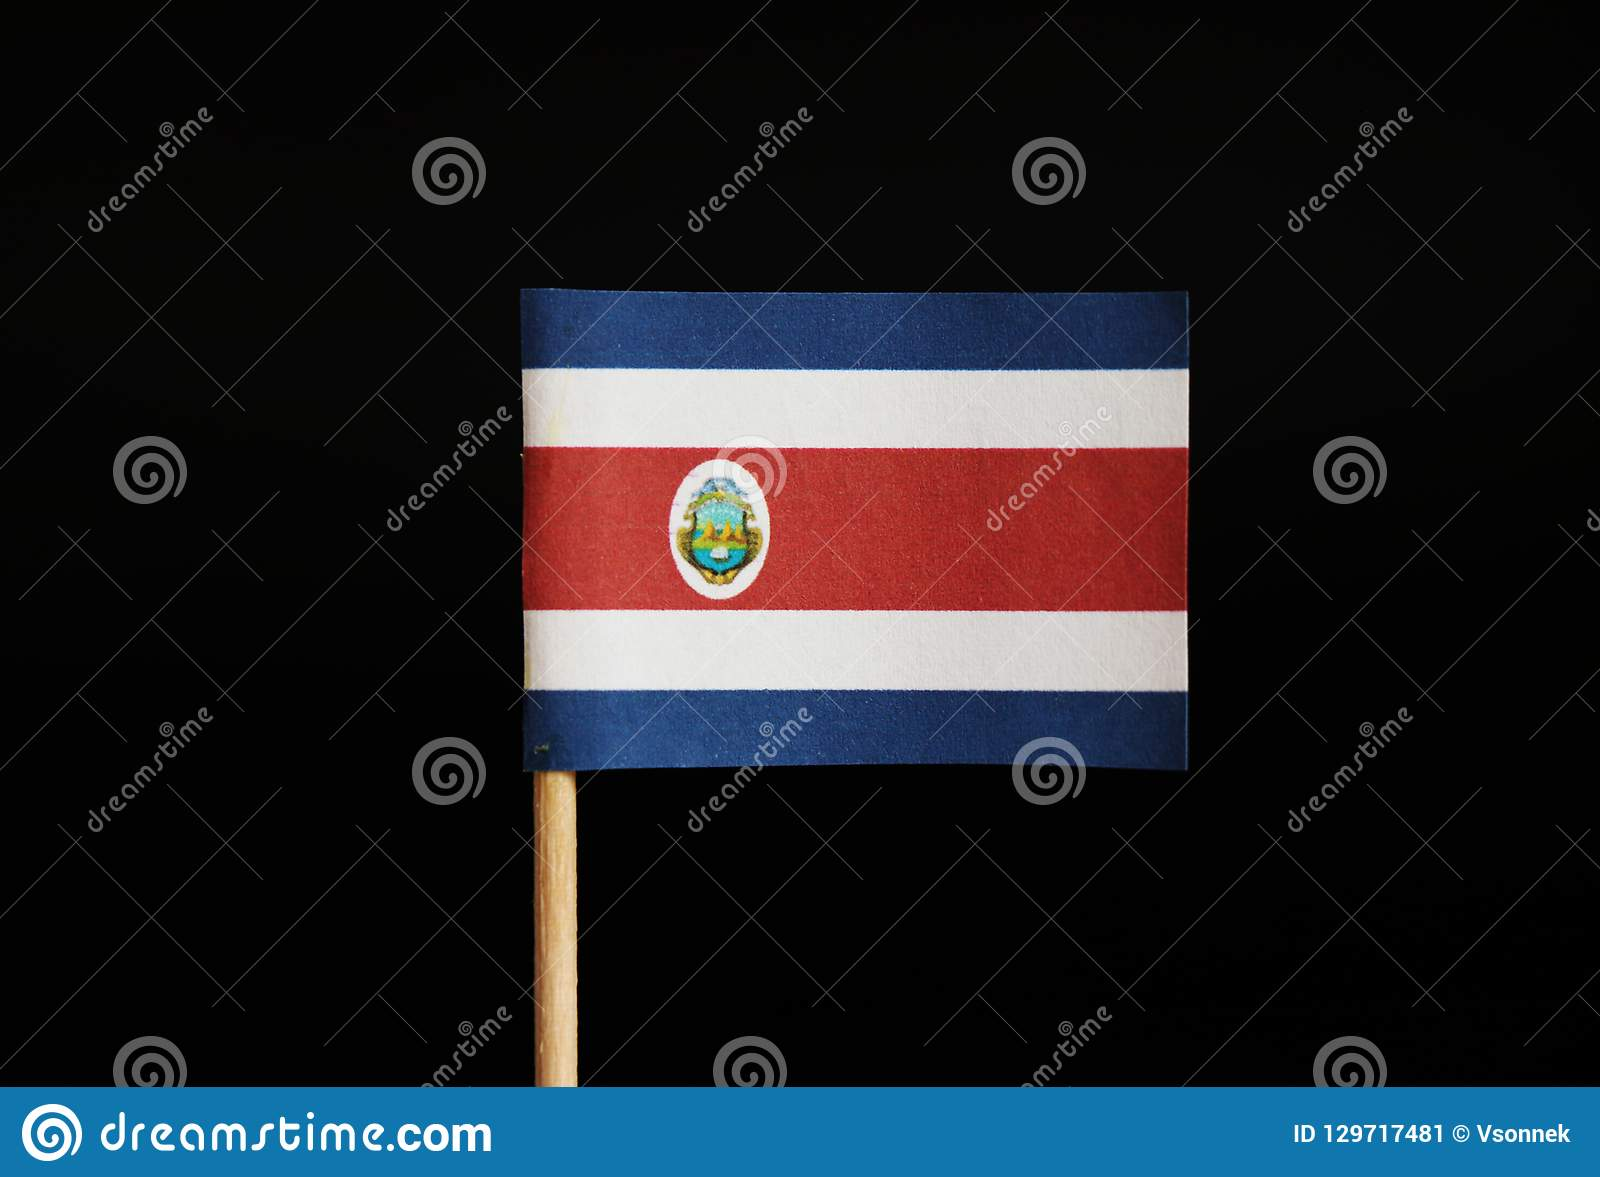 The national flag of the republic Costa Rica on toothpick and on black background. Located in central america.